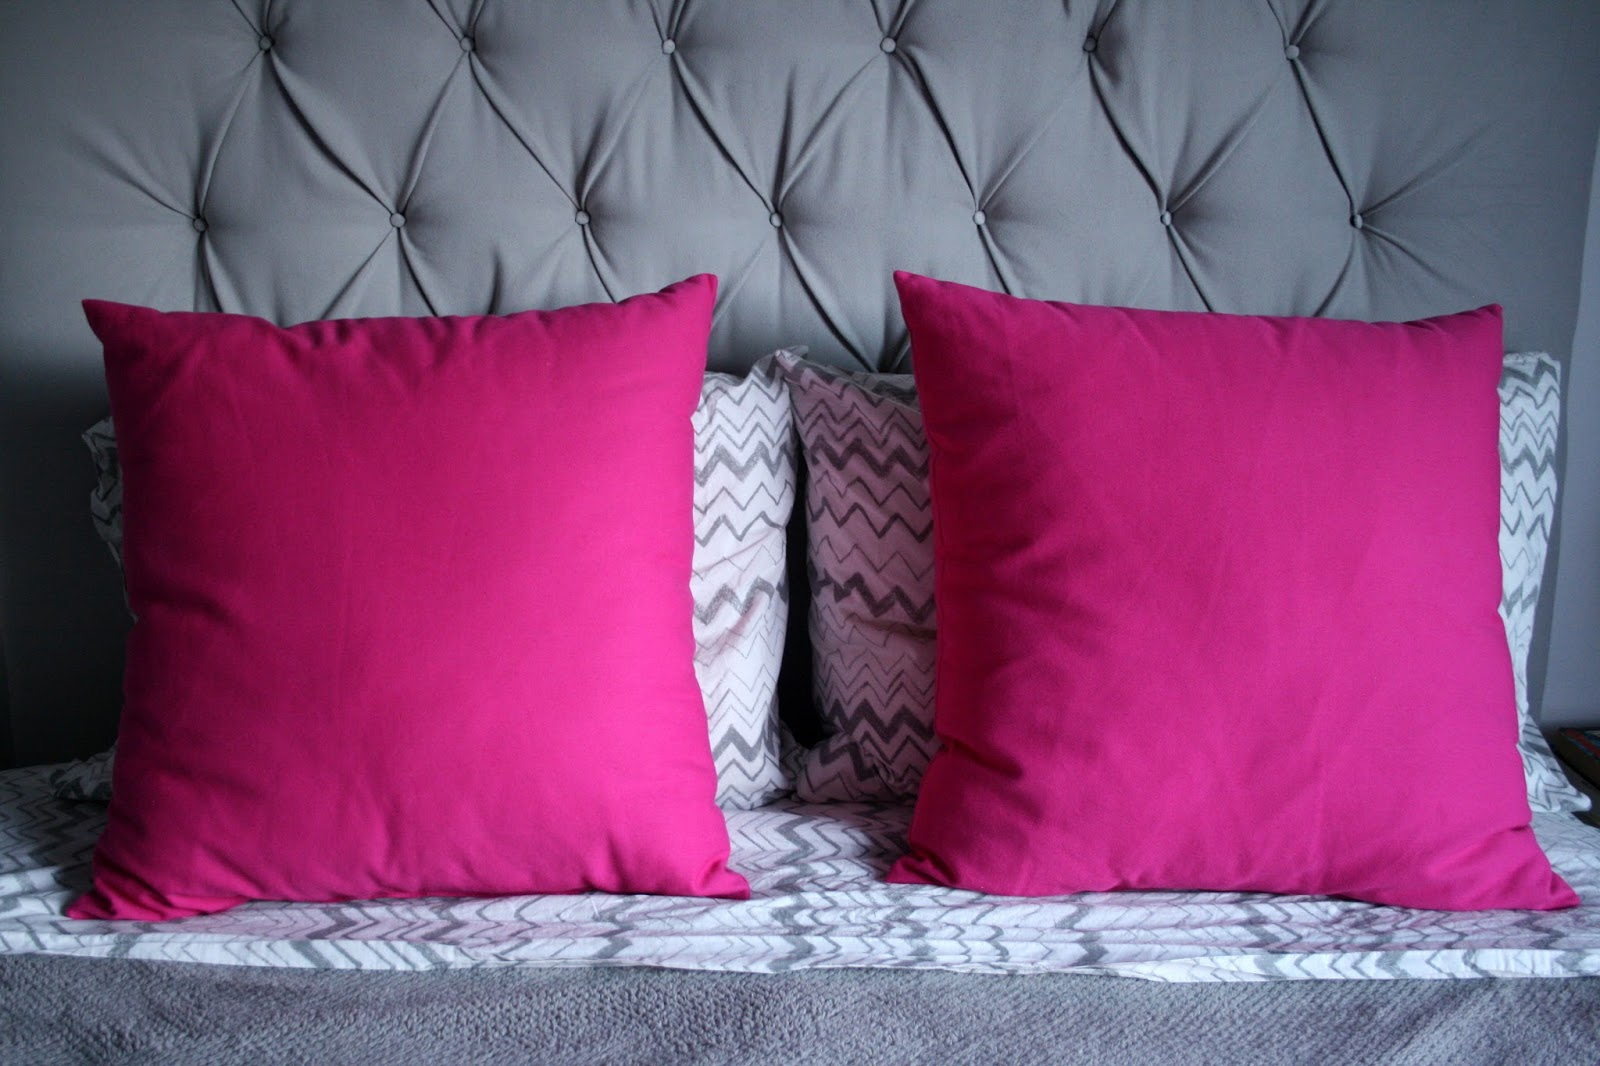 New hot pink bed pillows, and a styling dilemma / Create / Enjoy